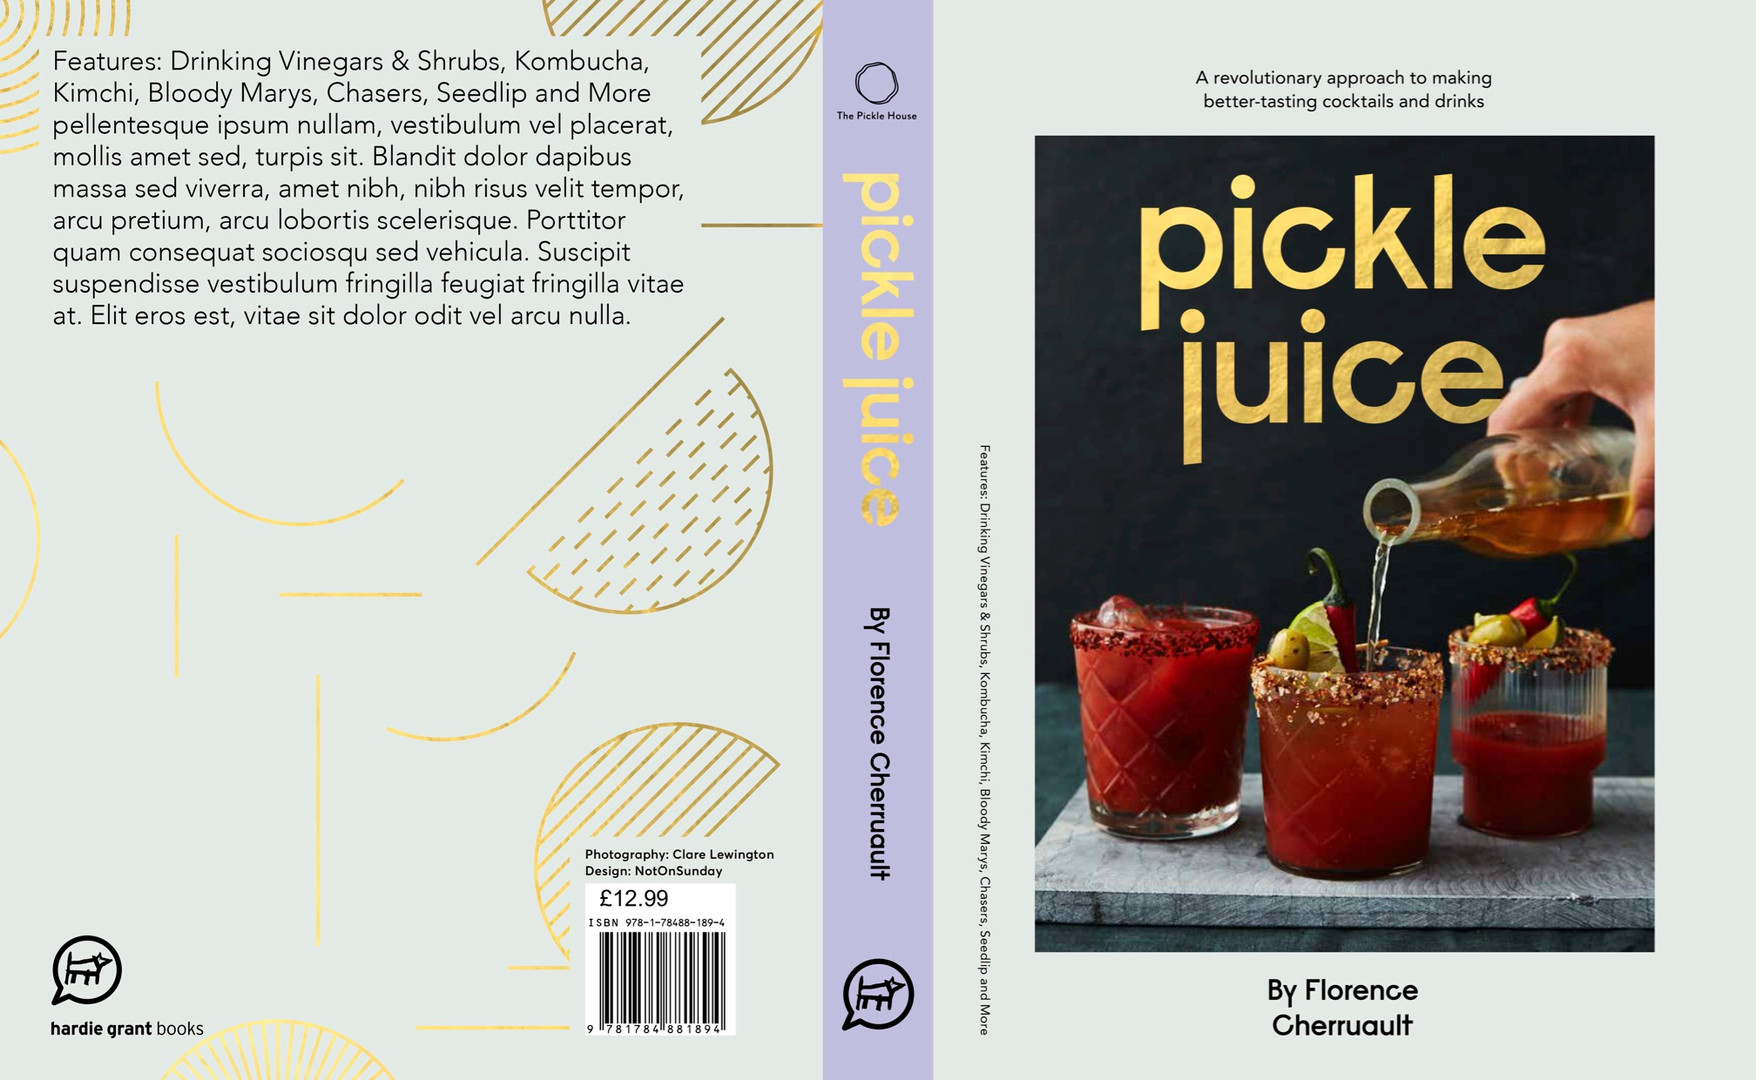 12b_Pickle_Juice_Covers_and_Spine.jpg